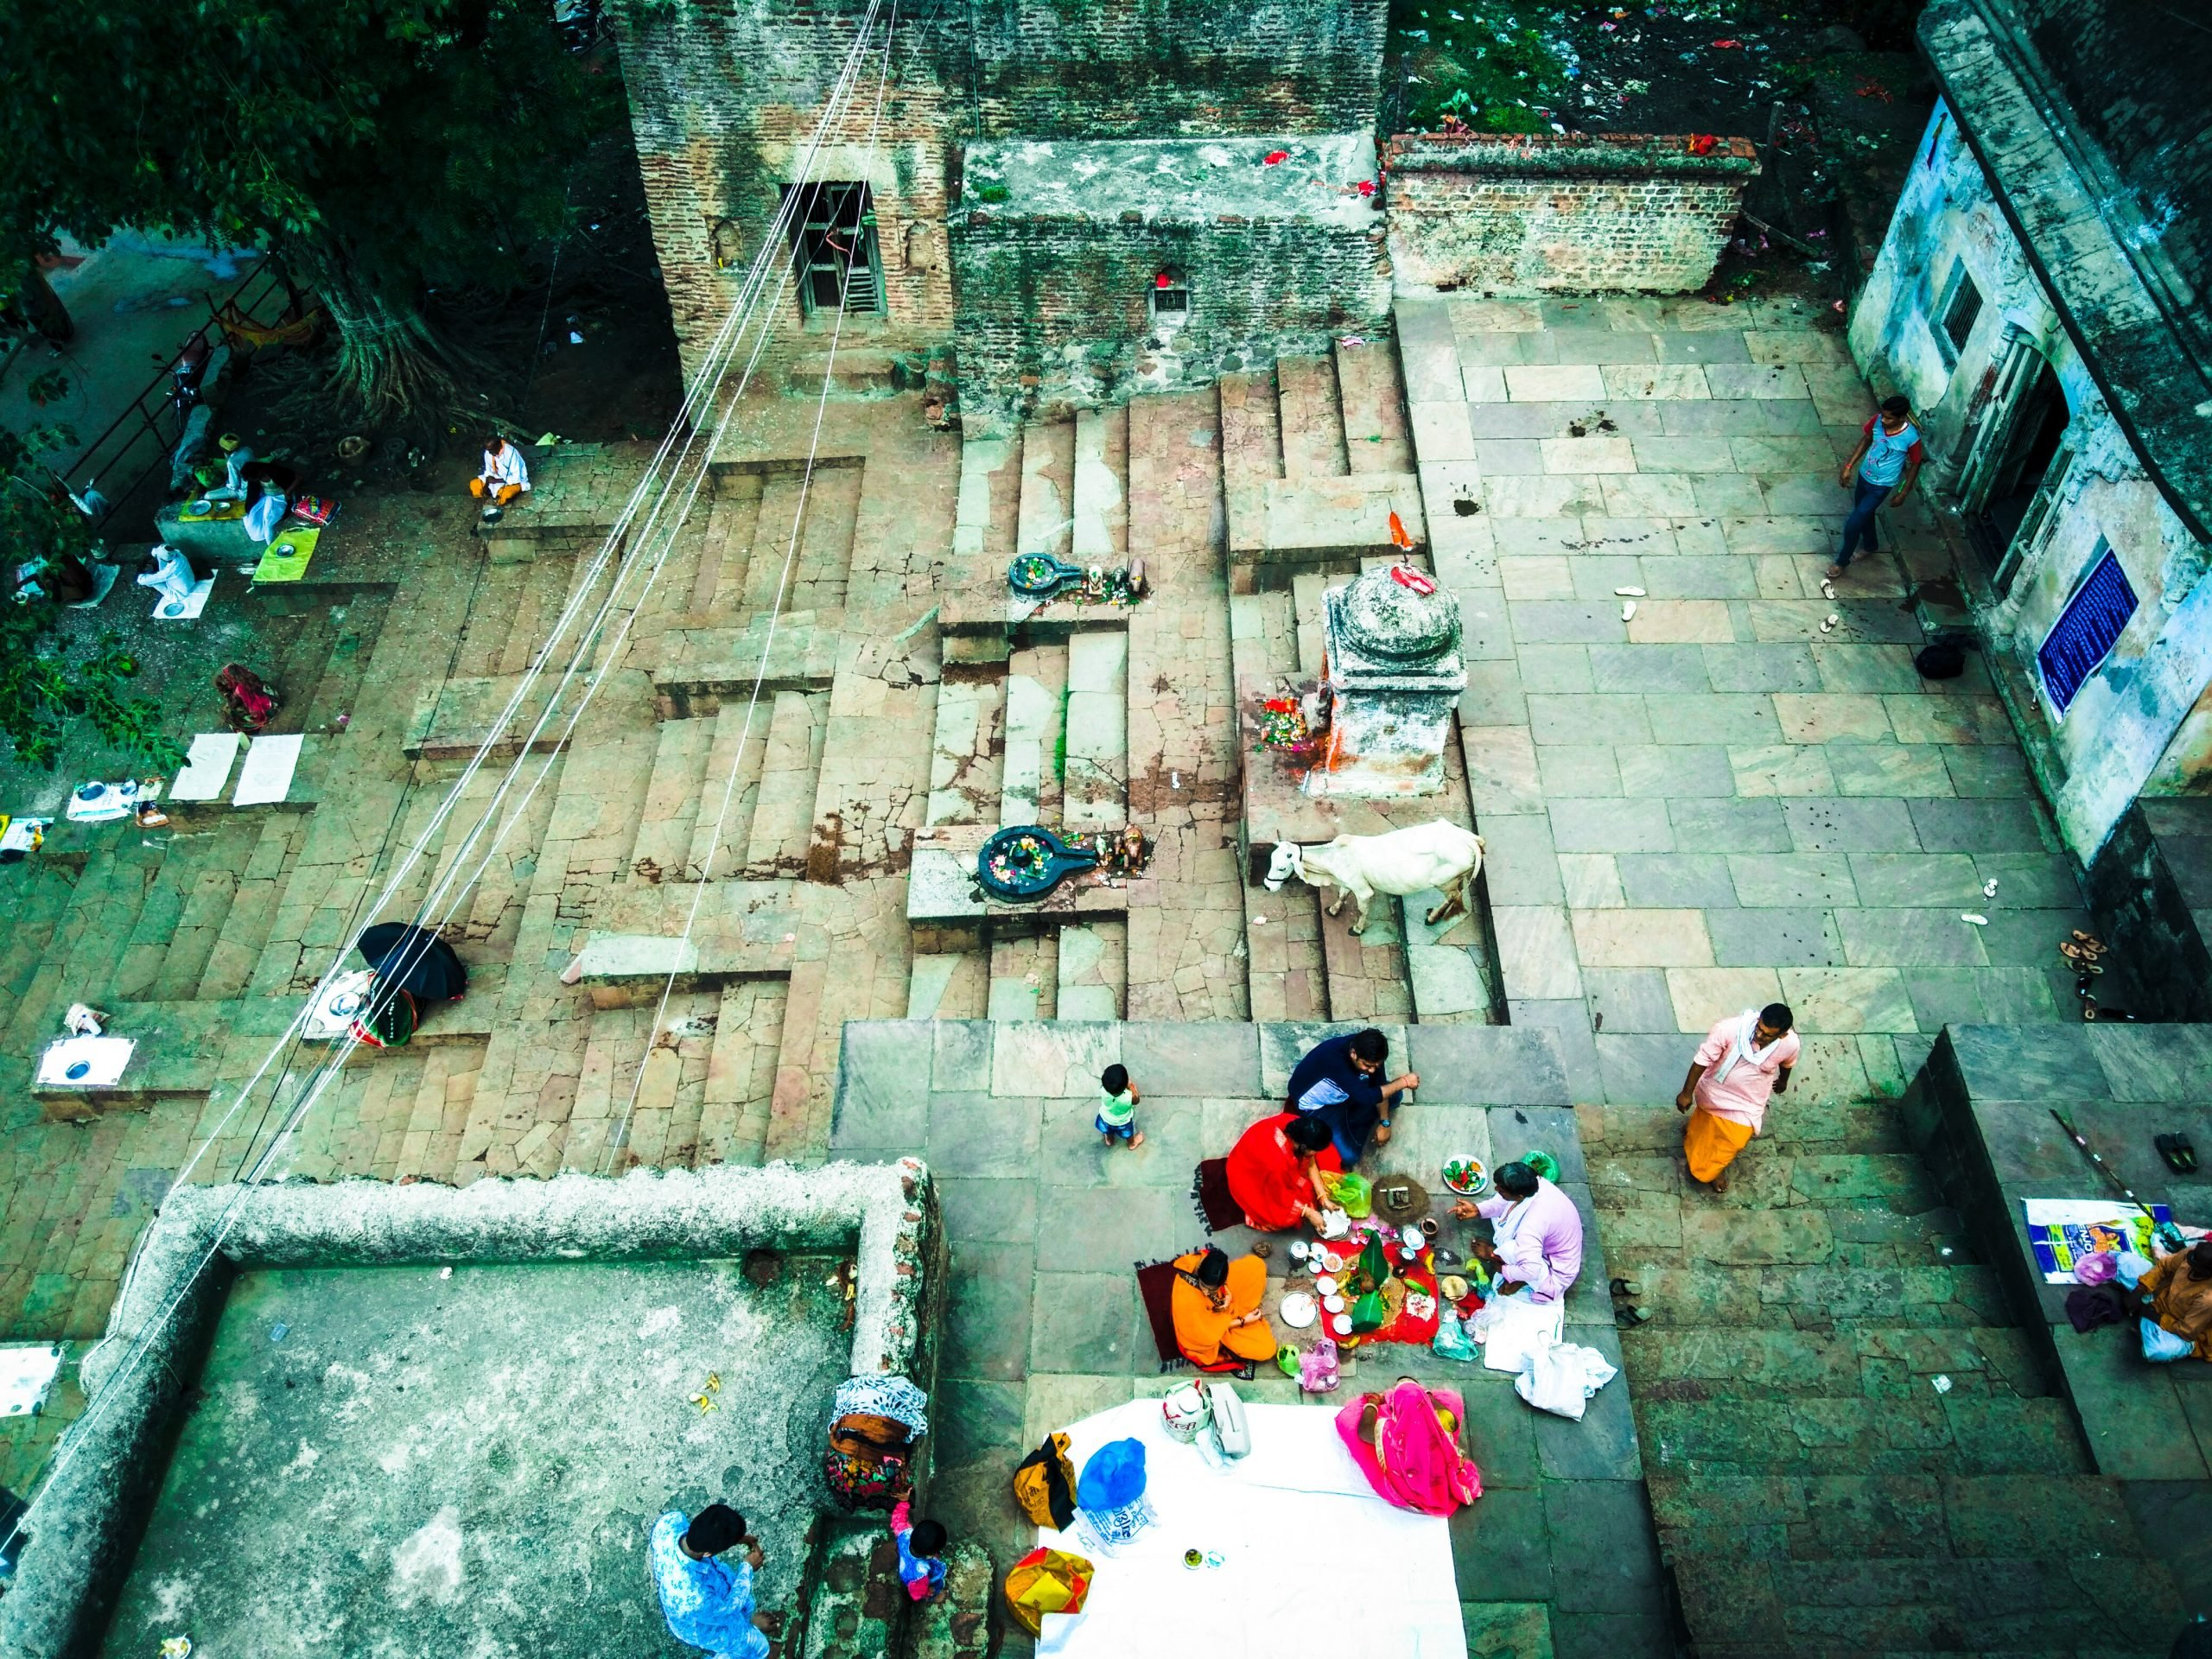 Ritual prayer at a Ghat in India